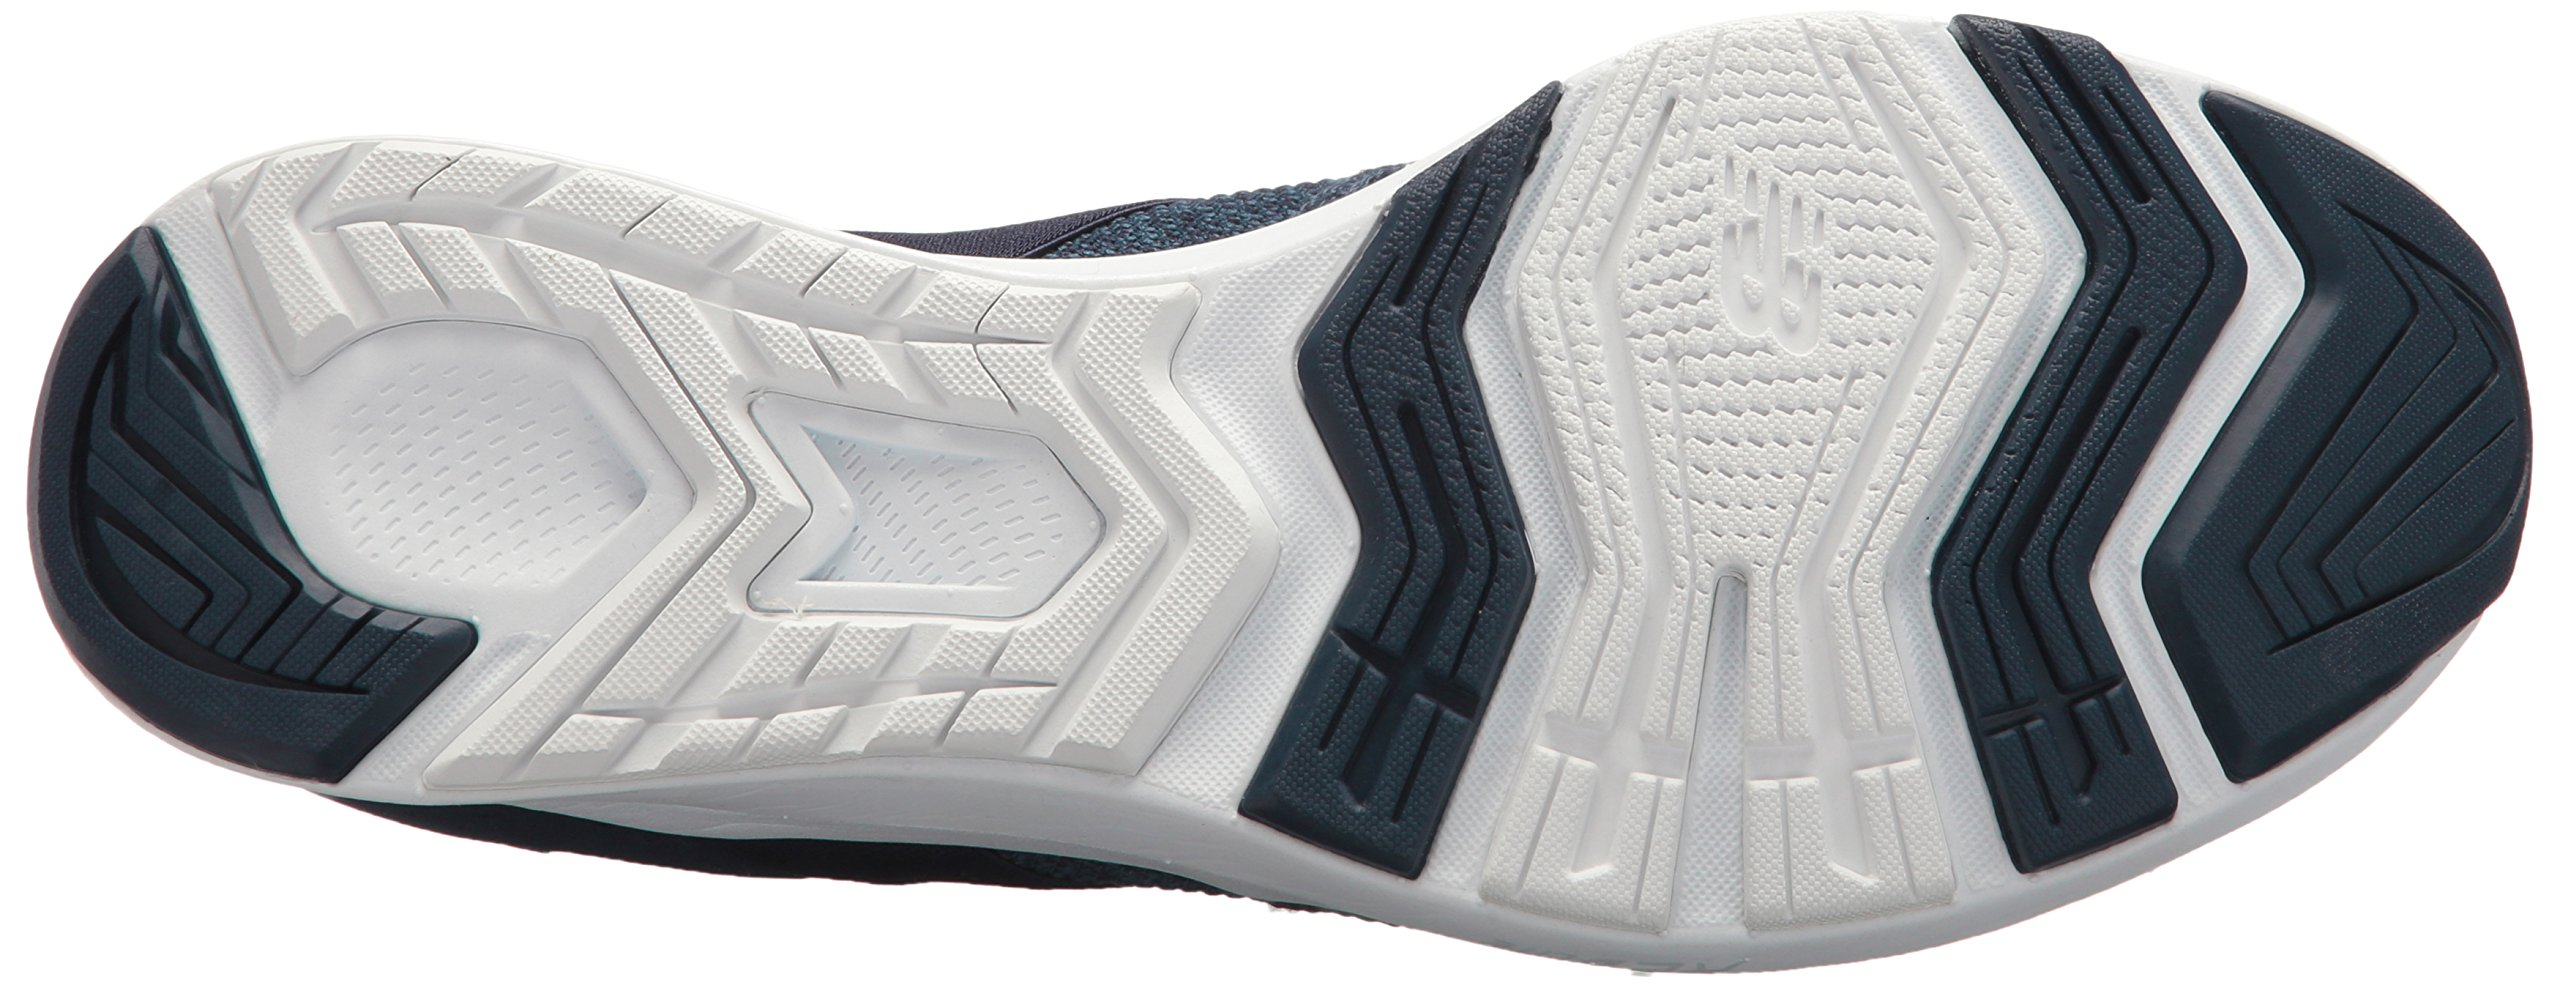 New Balance Women's FuelCore Nergize v1 FuelCore Training Shoe, Navy, 8 D US by New Balance (Image #3)